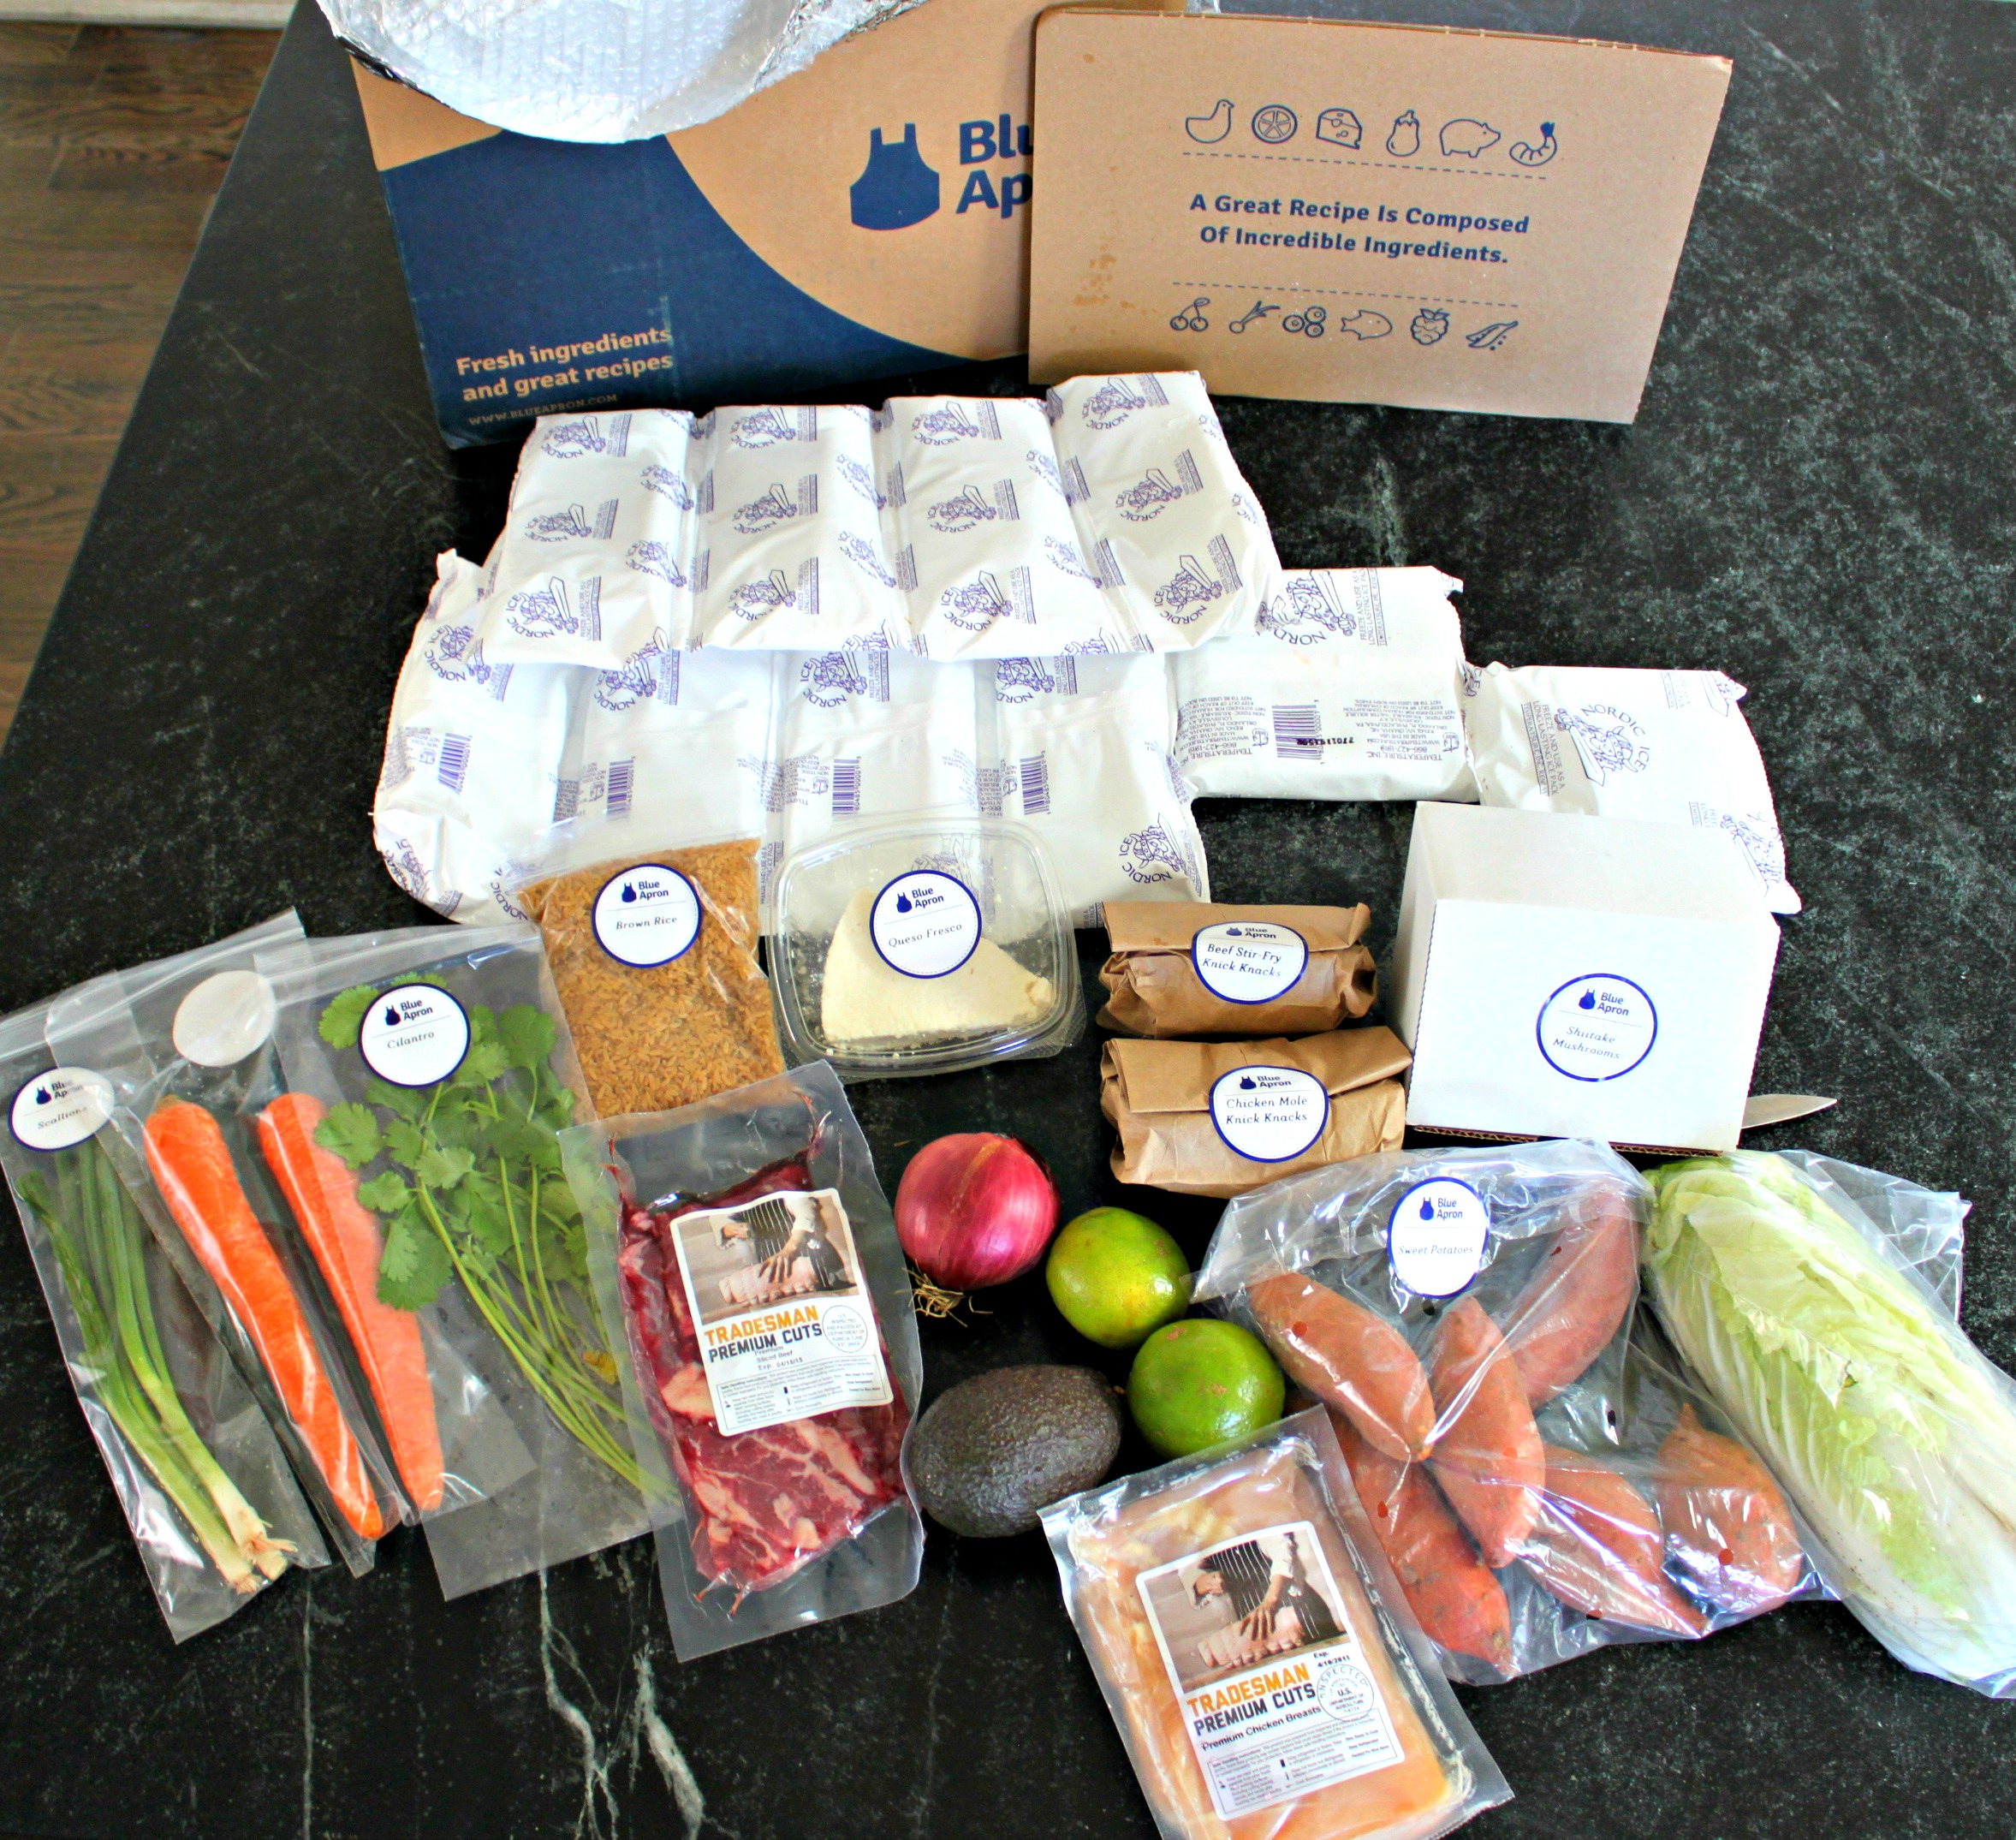 Blue apron dinners